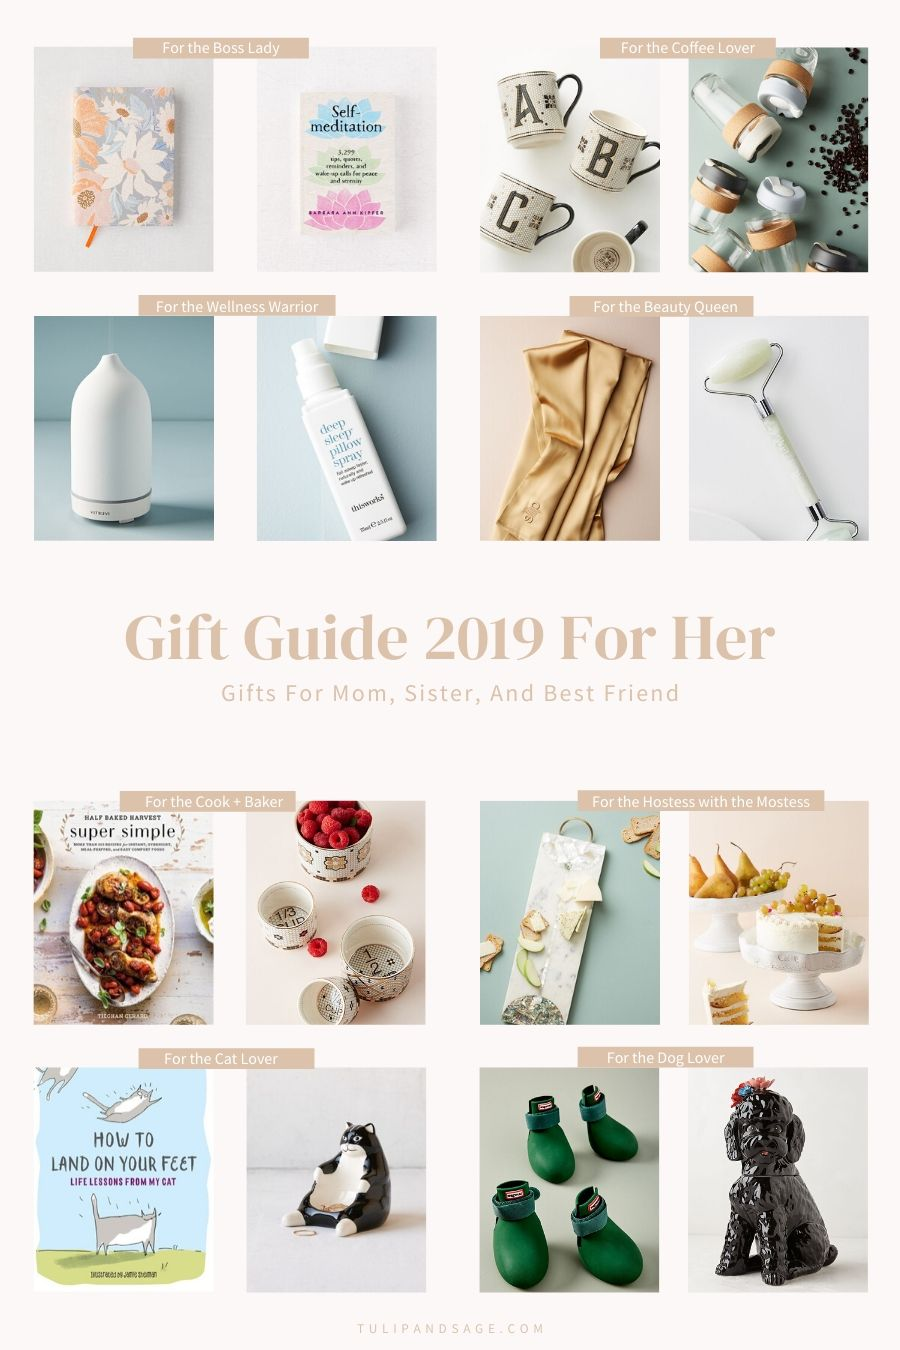 Stressing about what to get your mom, sister, or best friend this holiday season? This can help! Check out our Gift Guide 2019 For Her! #giftguide #giftguide2019 #giftideas #giftideasforher #holidaygiftguide